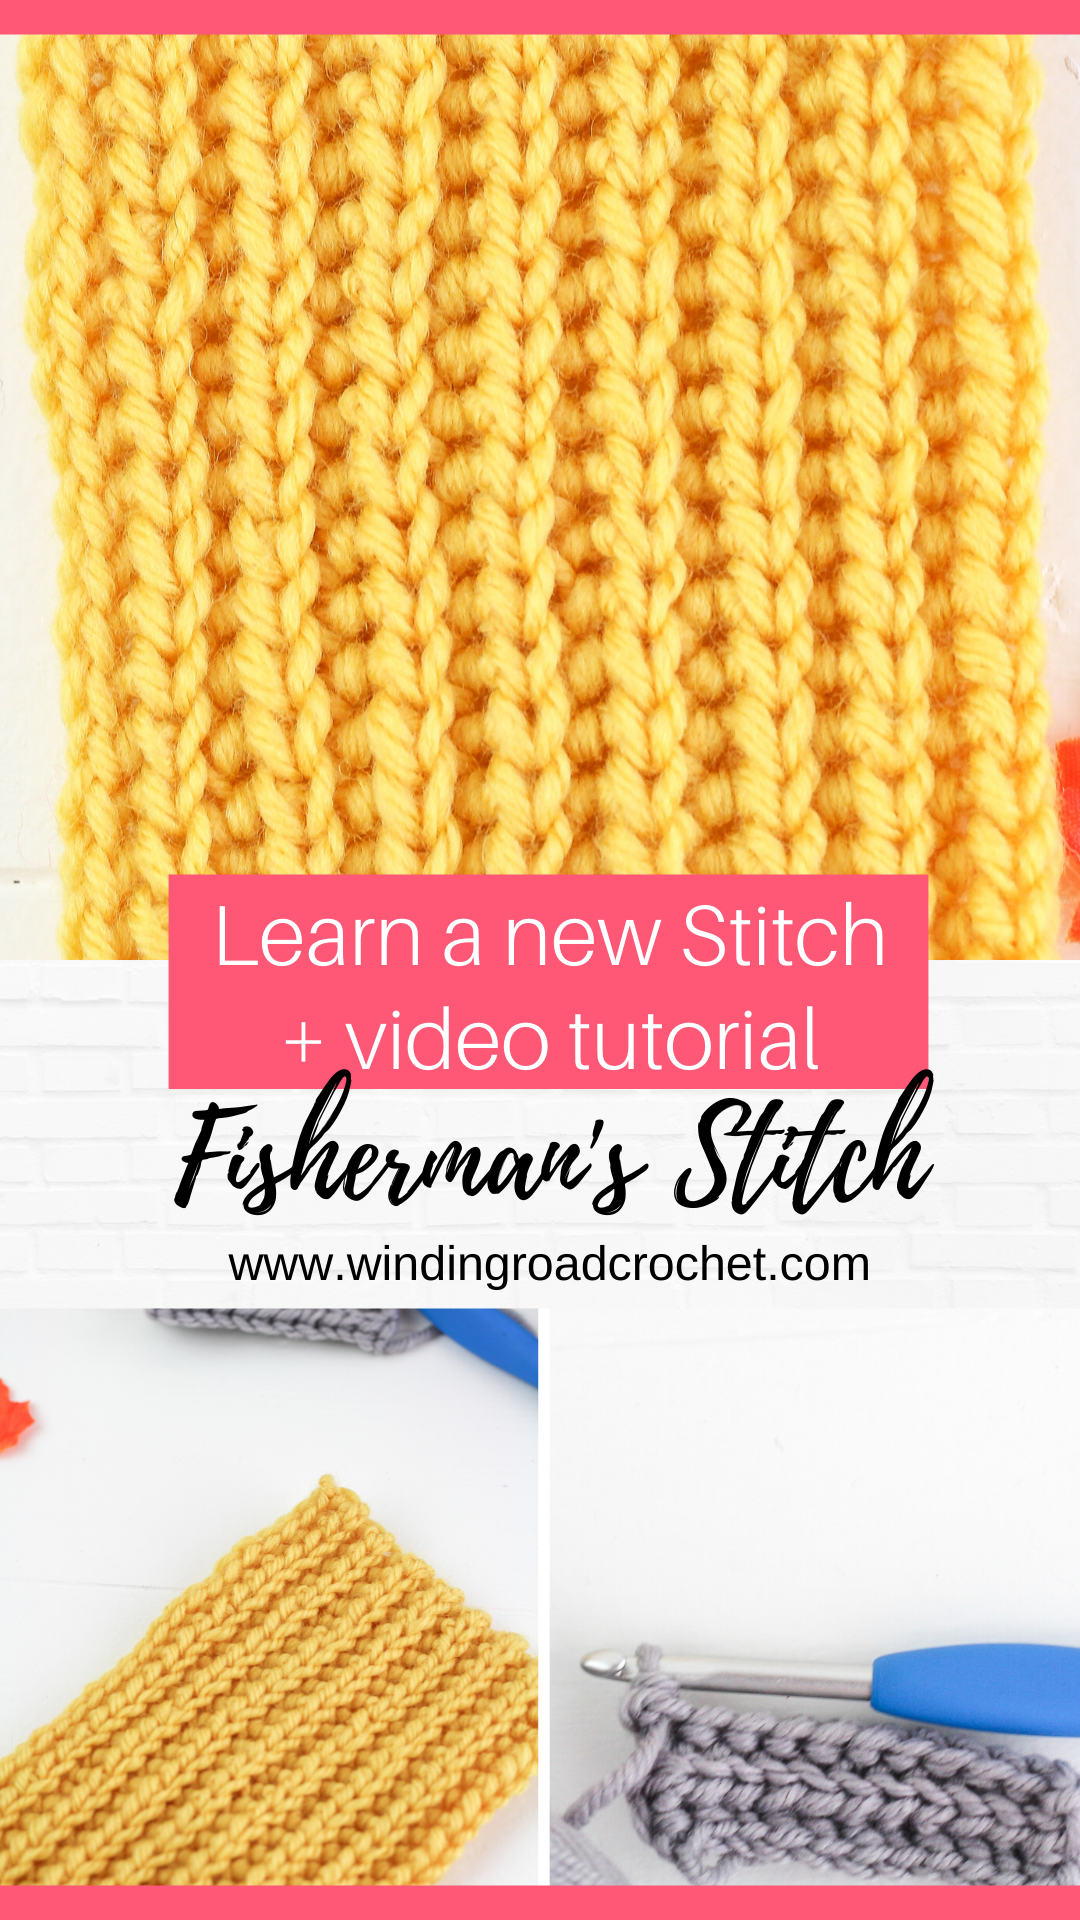 How to Crochet the Fisherman's Stitch